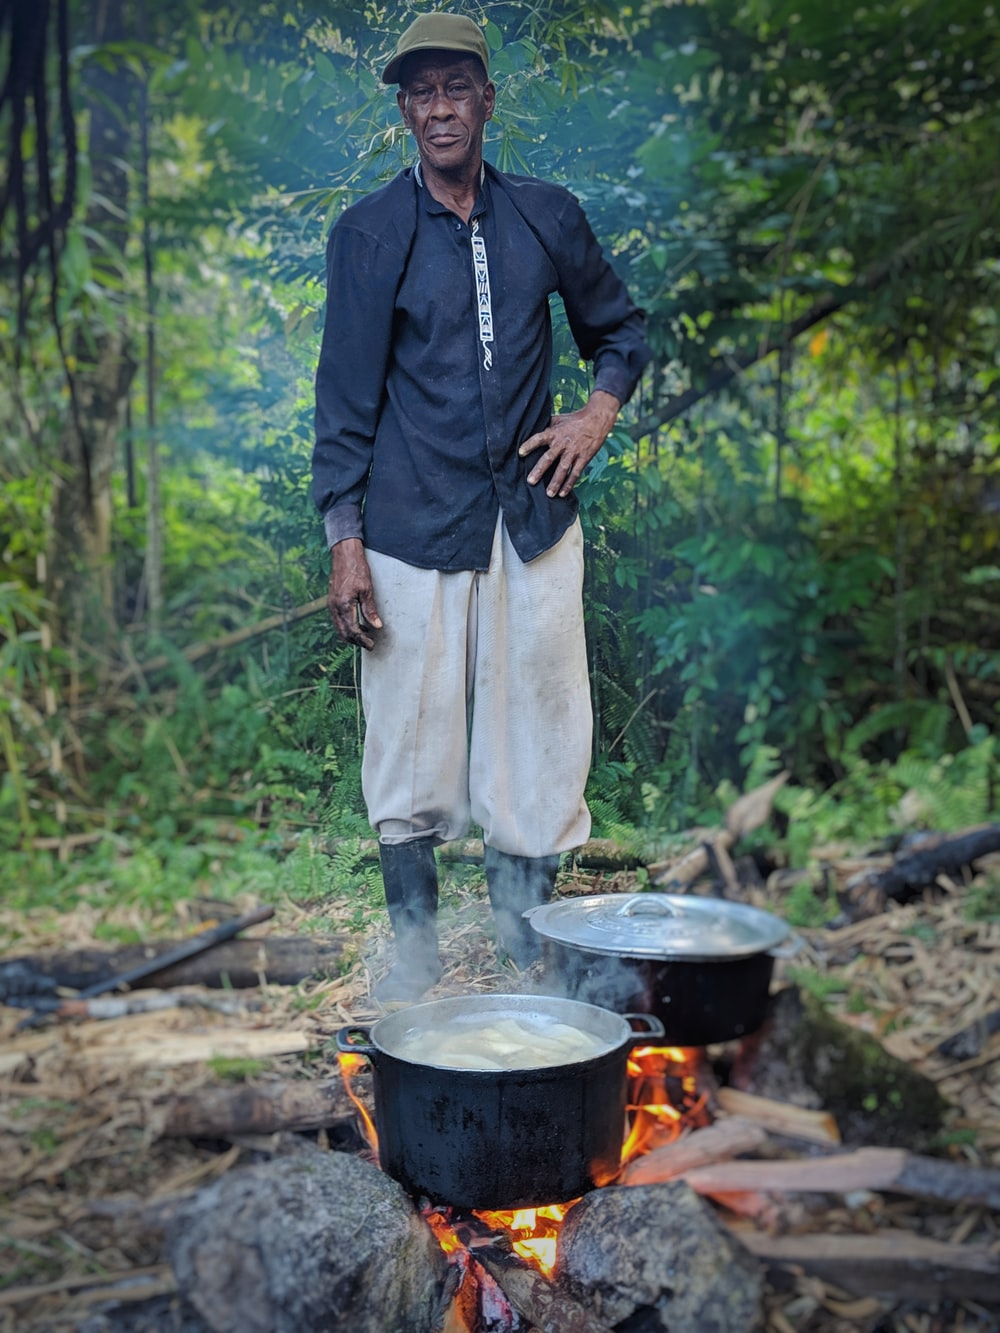 man standing in front of cooking pots